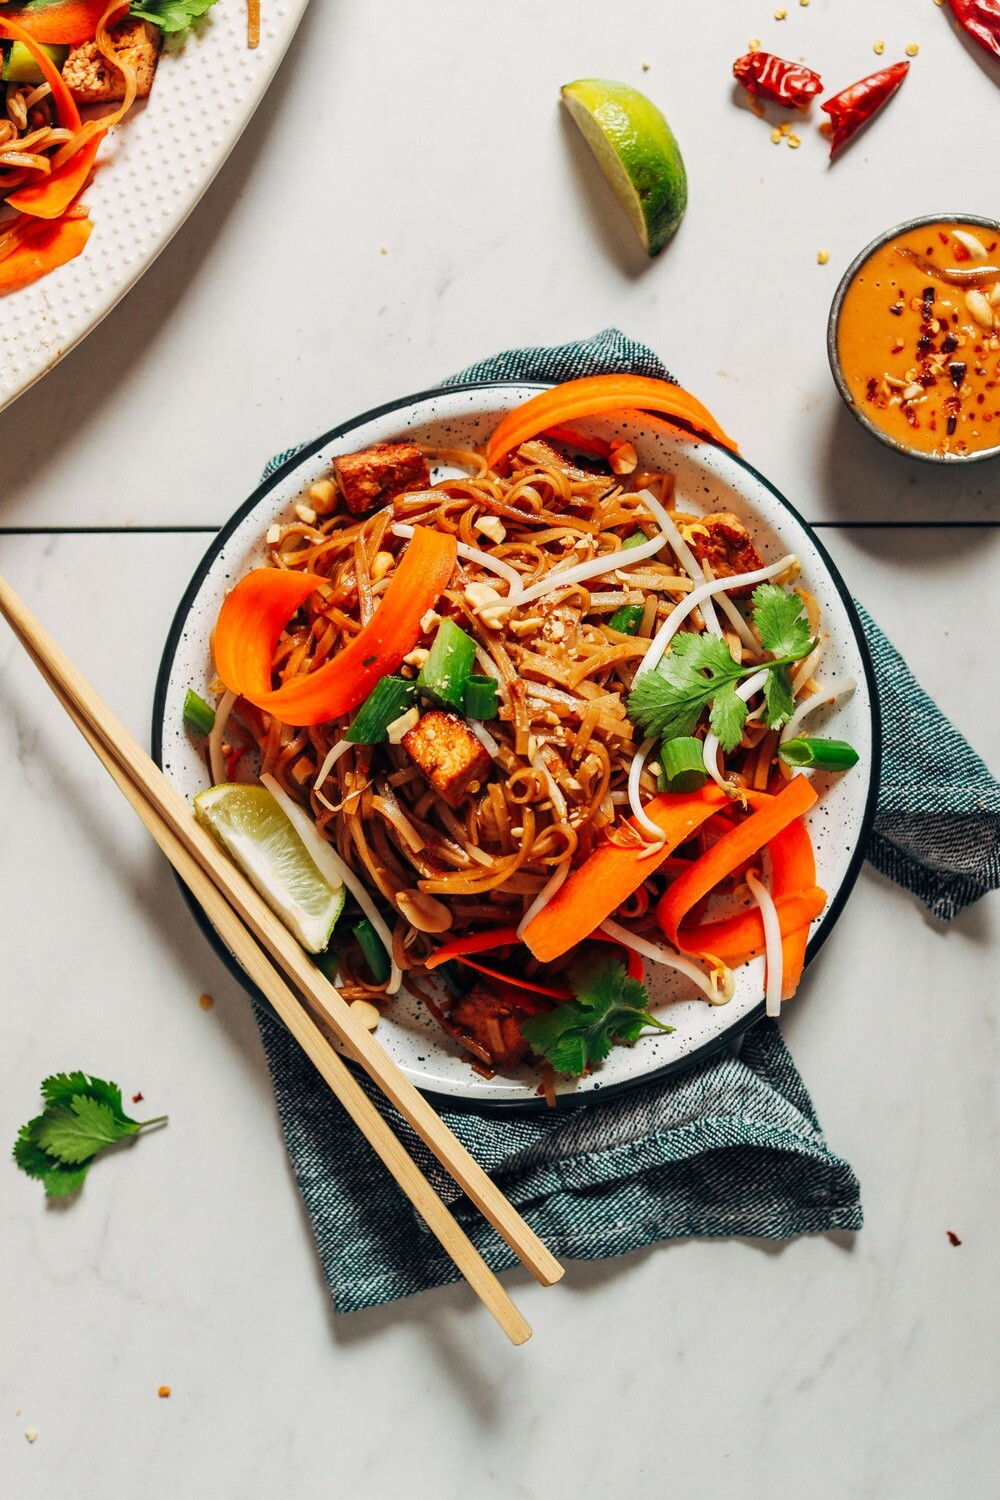 THE SHEPPEY PAD THAI WITH TOFU